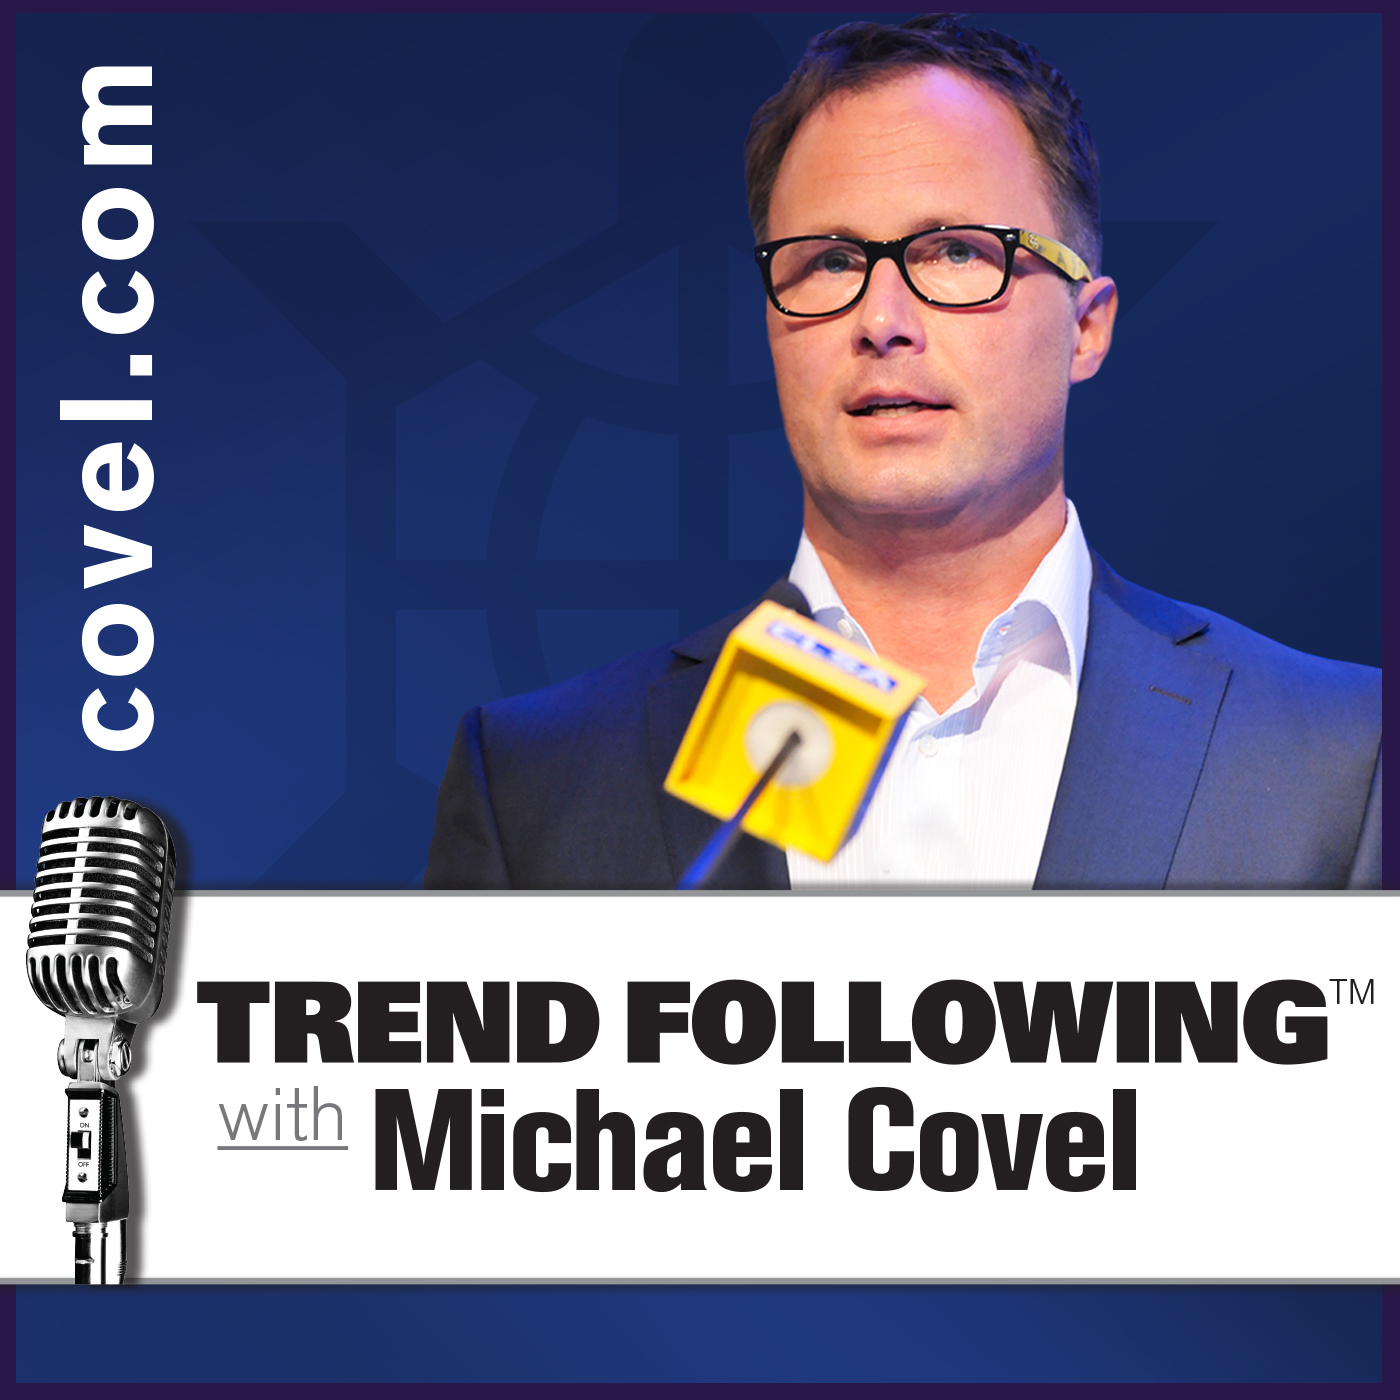 Ep. 504: Jim Rickards Interview with Michael Covel on Trend Following Radio